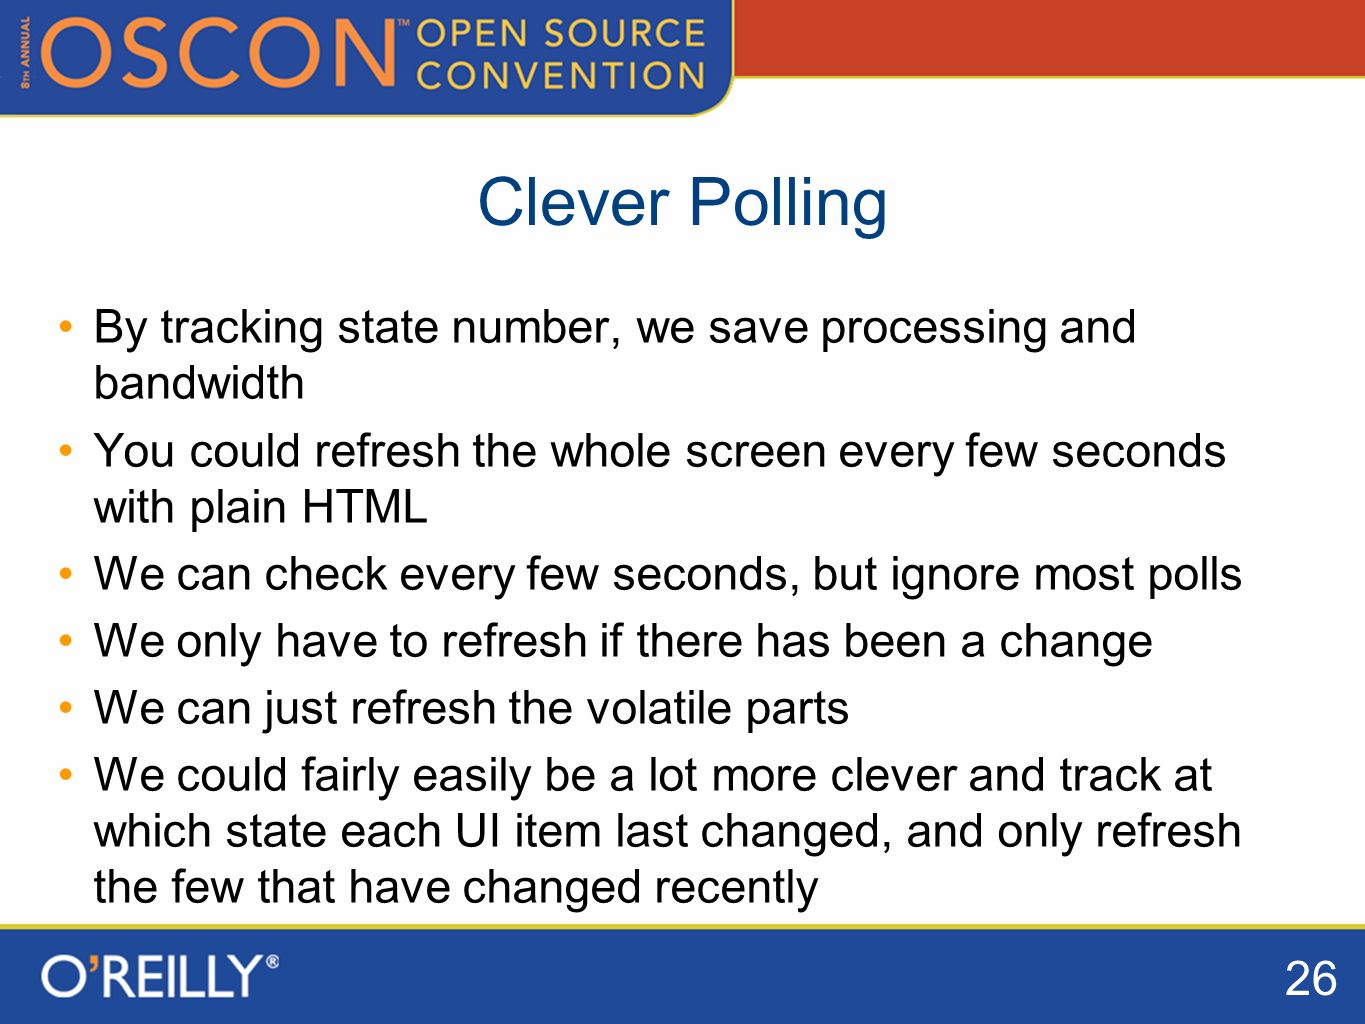 26 Clever Polling By tracking state number, we save processing and bandwidth You could refresh the whole screen every few seconds with plain HTML We can check every few seconds, but ignore most polls We only have to refresh if there has been a change We can just refresh the volatile parts We could fairly easily be a lot more clever and track at which state each UI item last changed, and only refresh the few that have changed recently